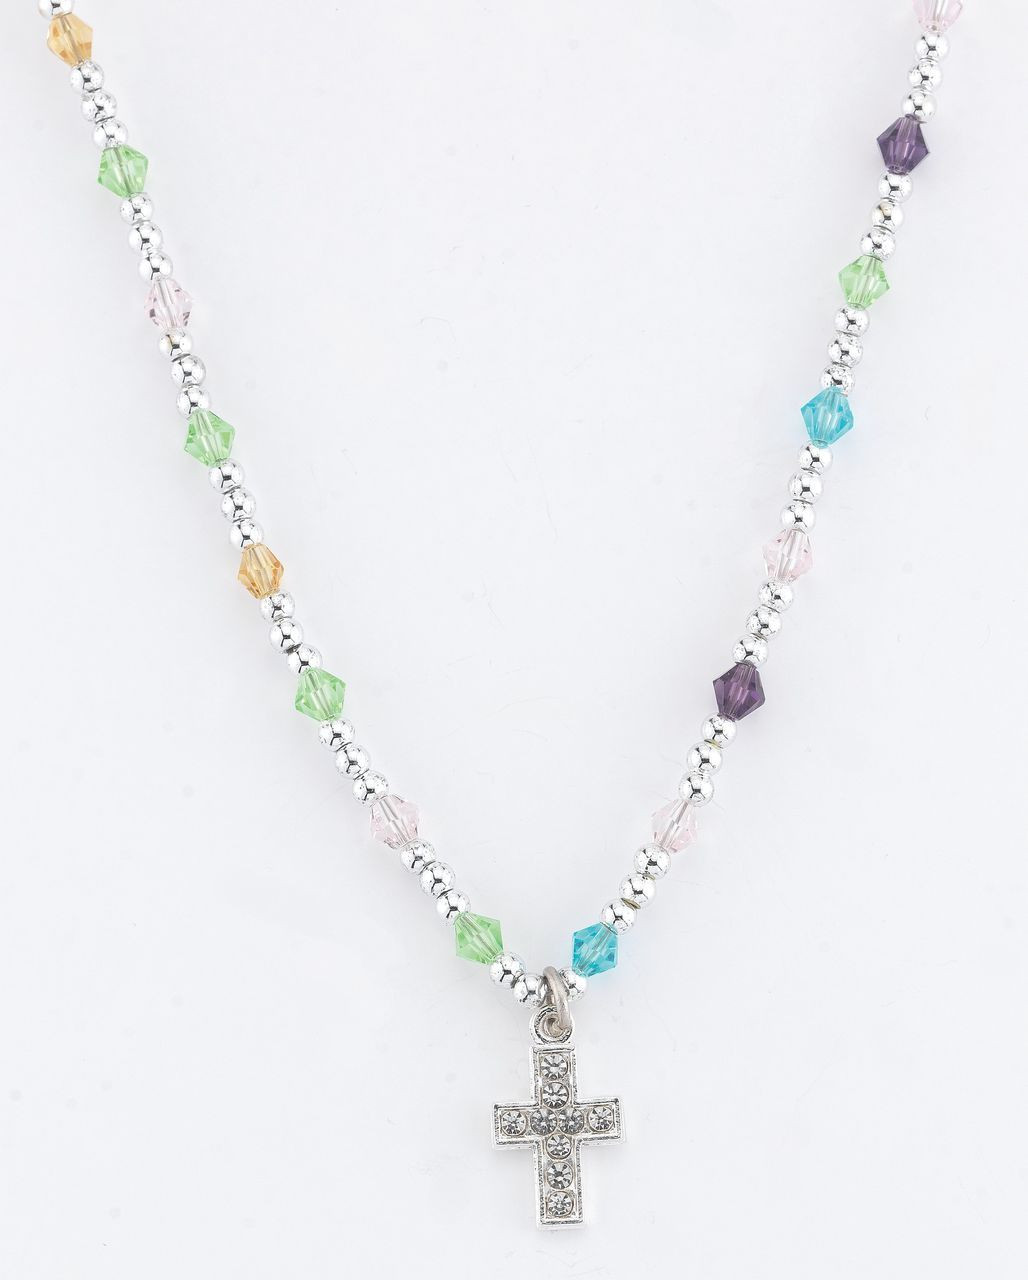 18-Inch Rhodium Plated Necklace with 6mm Light Rose Birthstone Beads and Sterling Silver Saint George Charm.